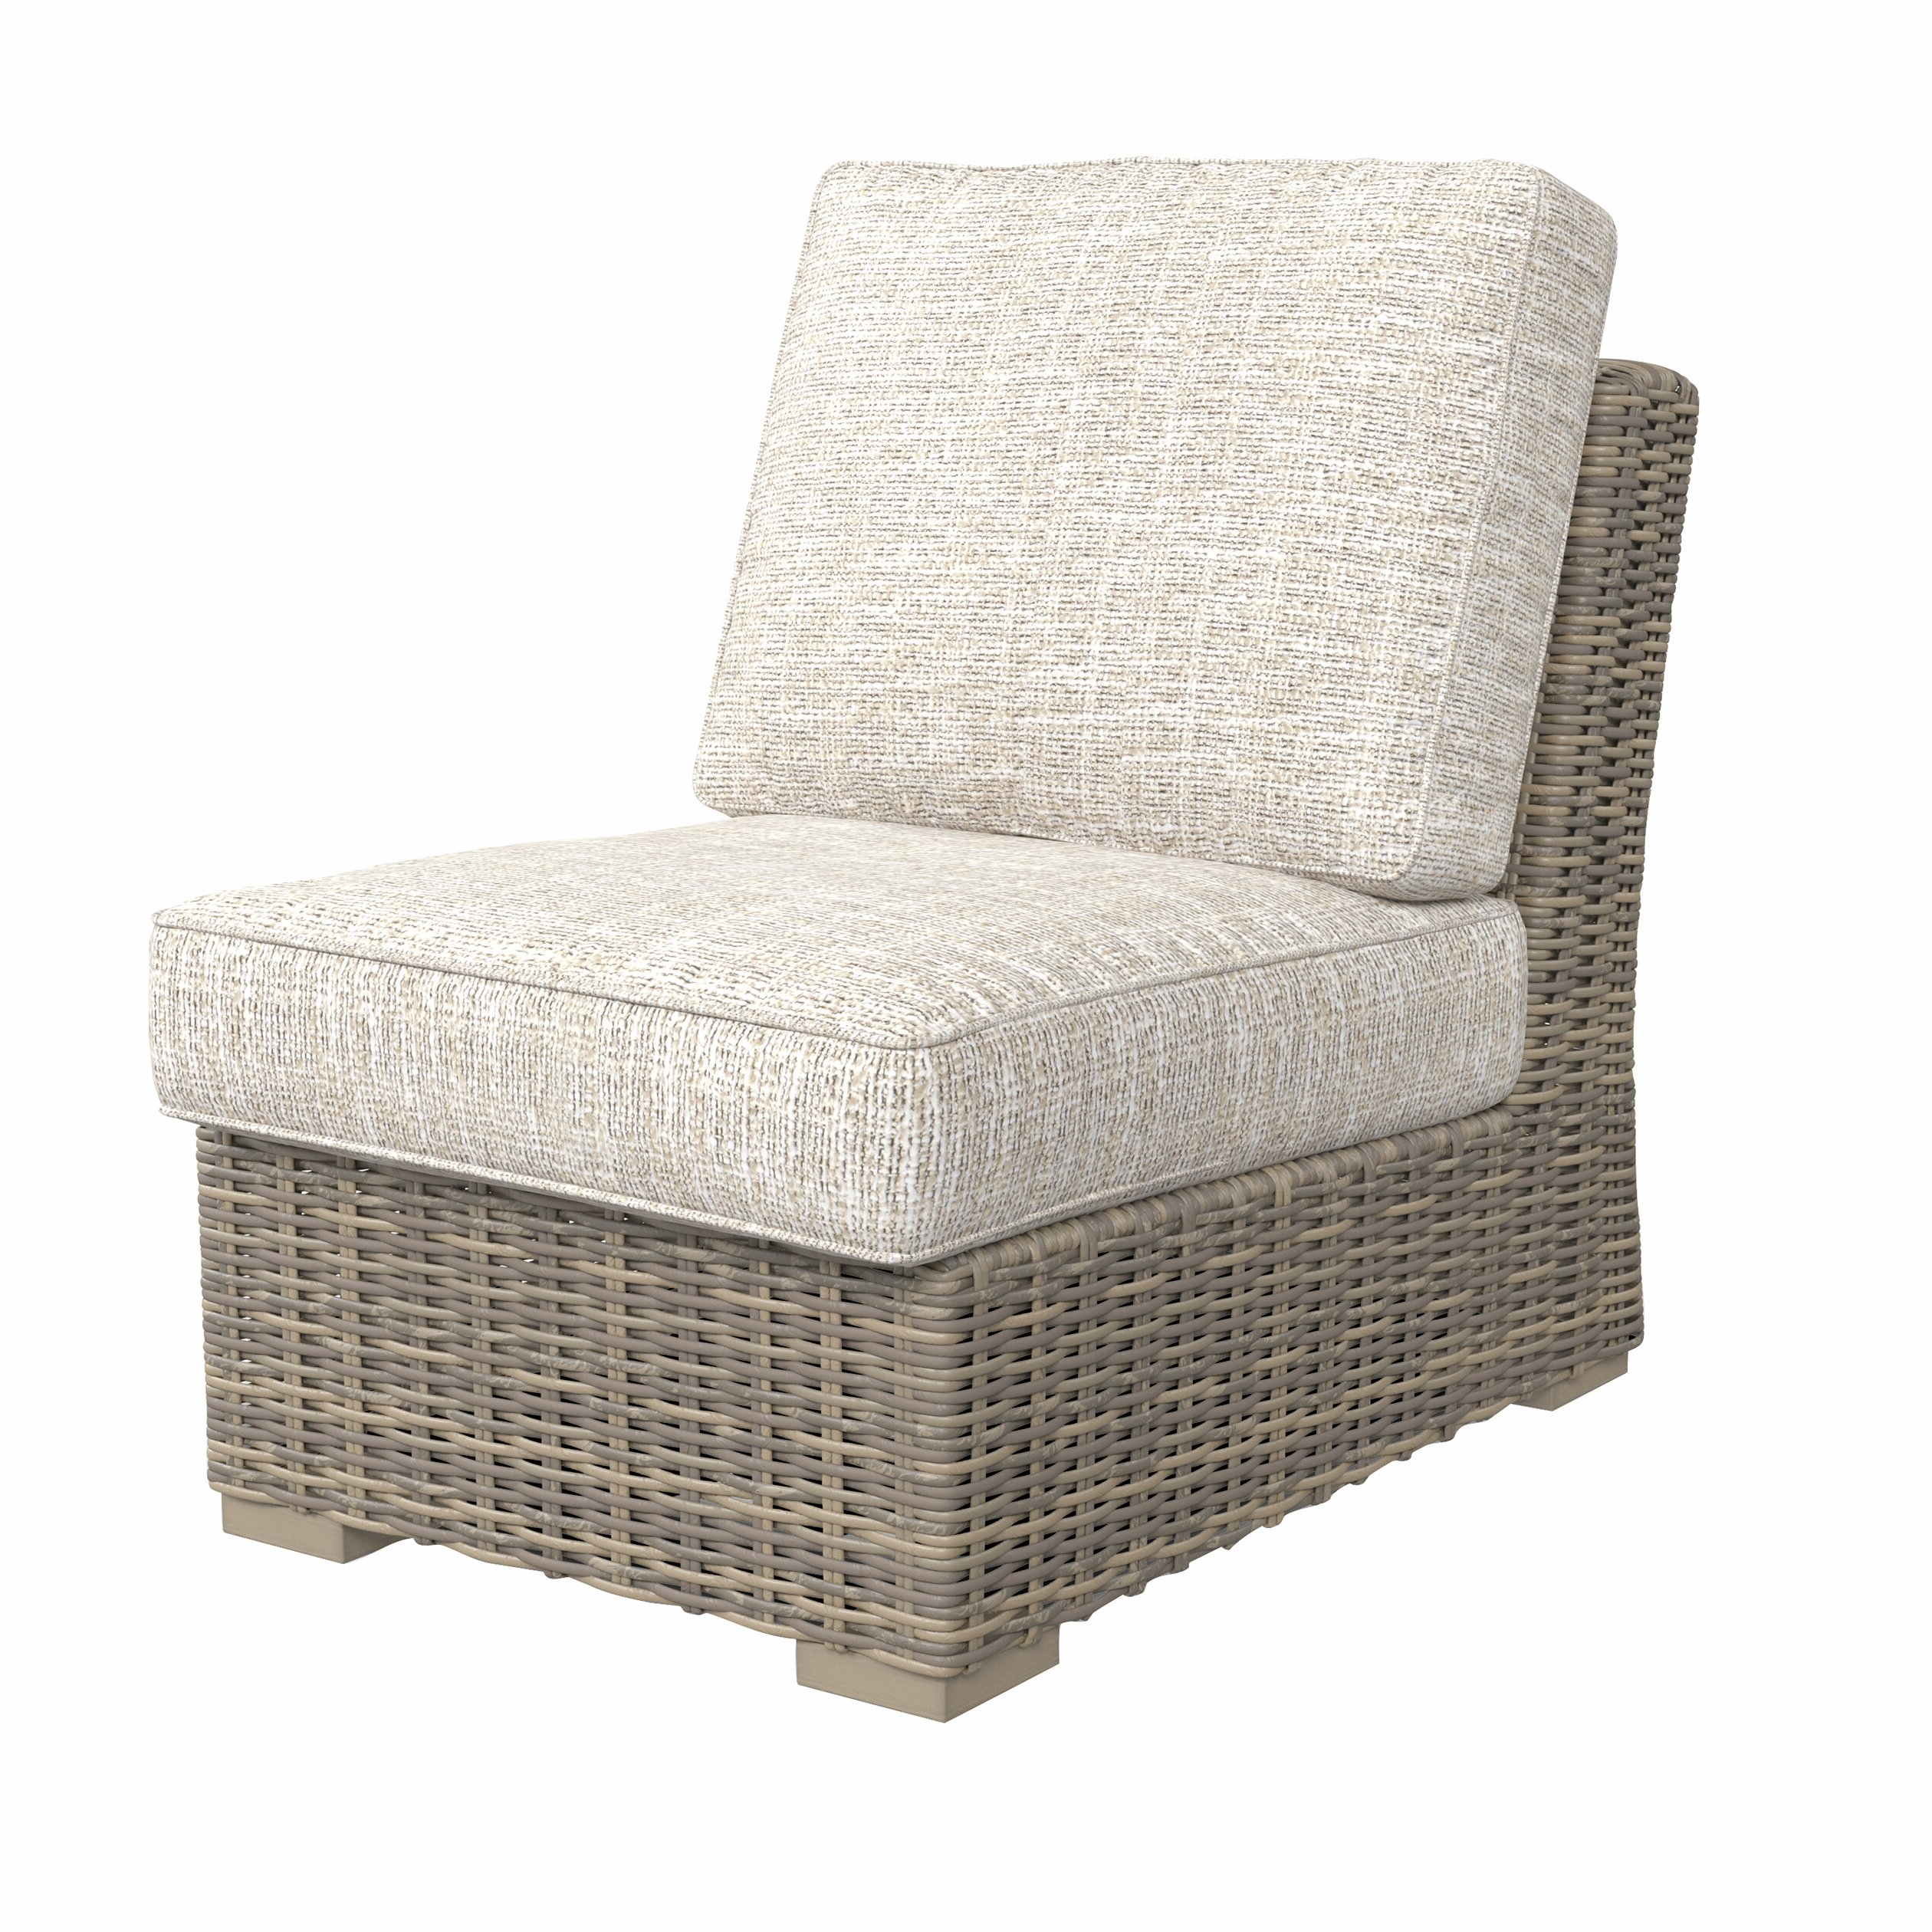 Flippo Patio Chair With Cushions Throughout Newest Astrid Wicker Patio Sofas With Cushions (View 10 of 25)